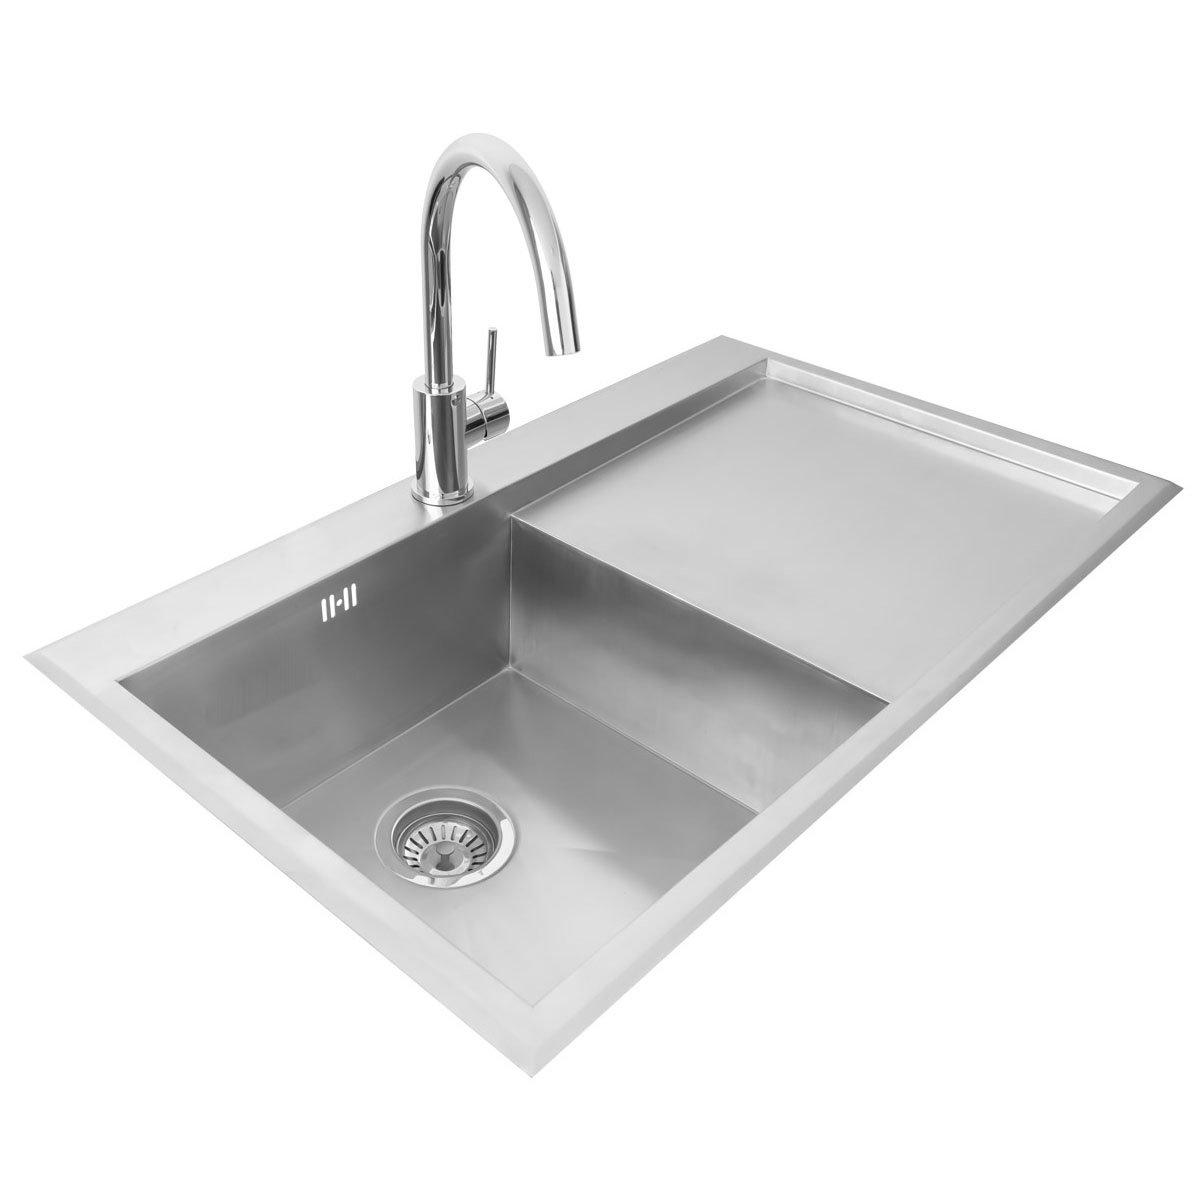 Valle Richmond 860x510mm Right Hand Single Bowl Compact Kitchen Sink